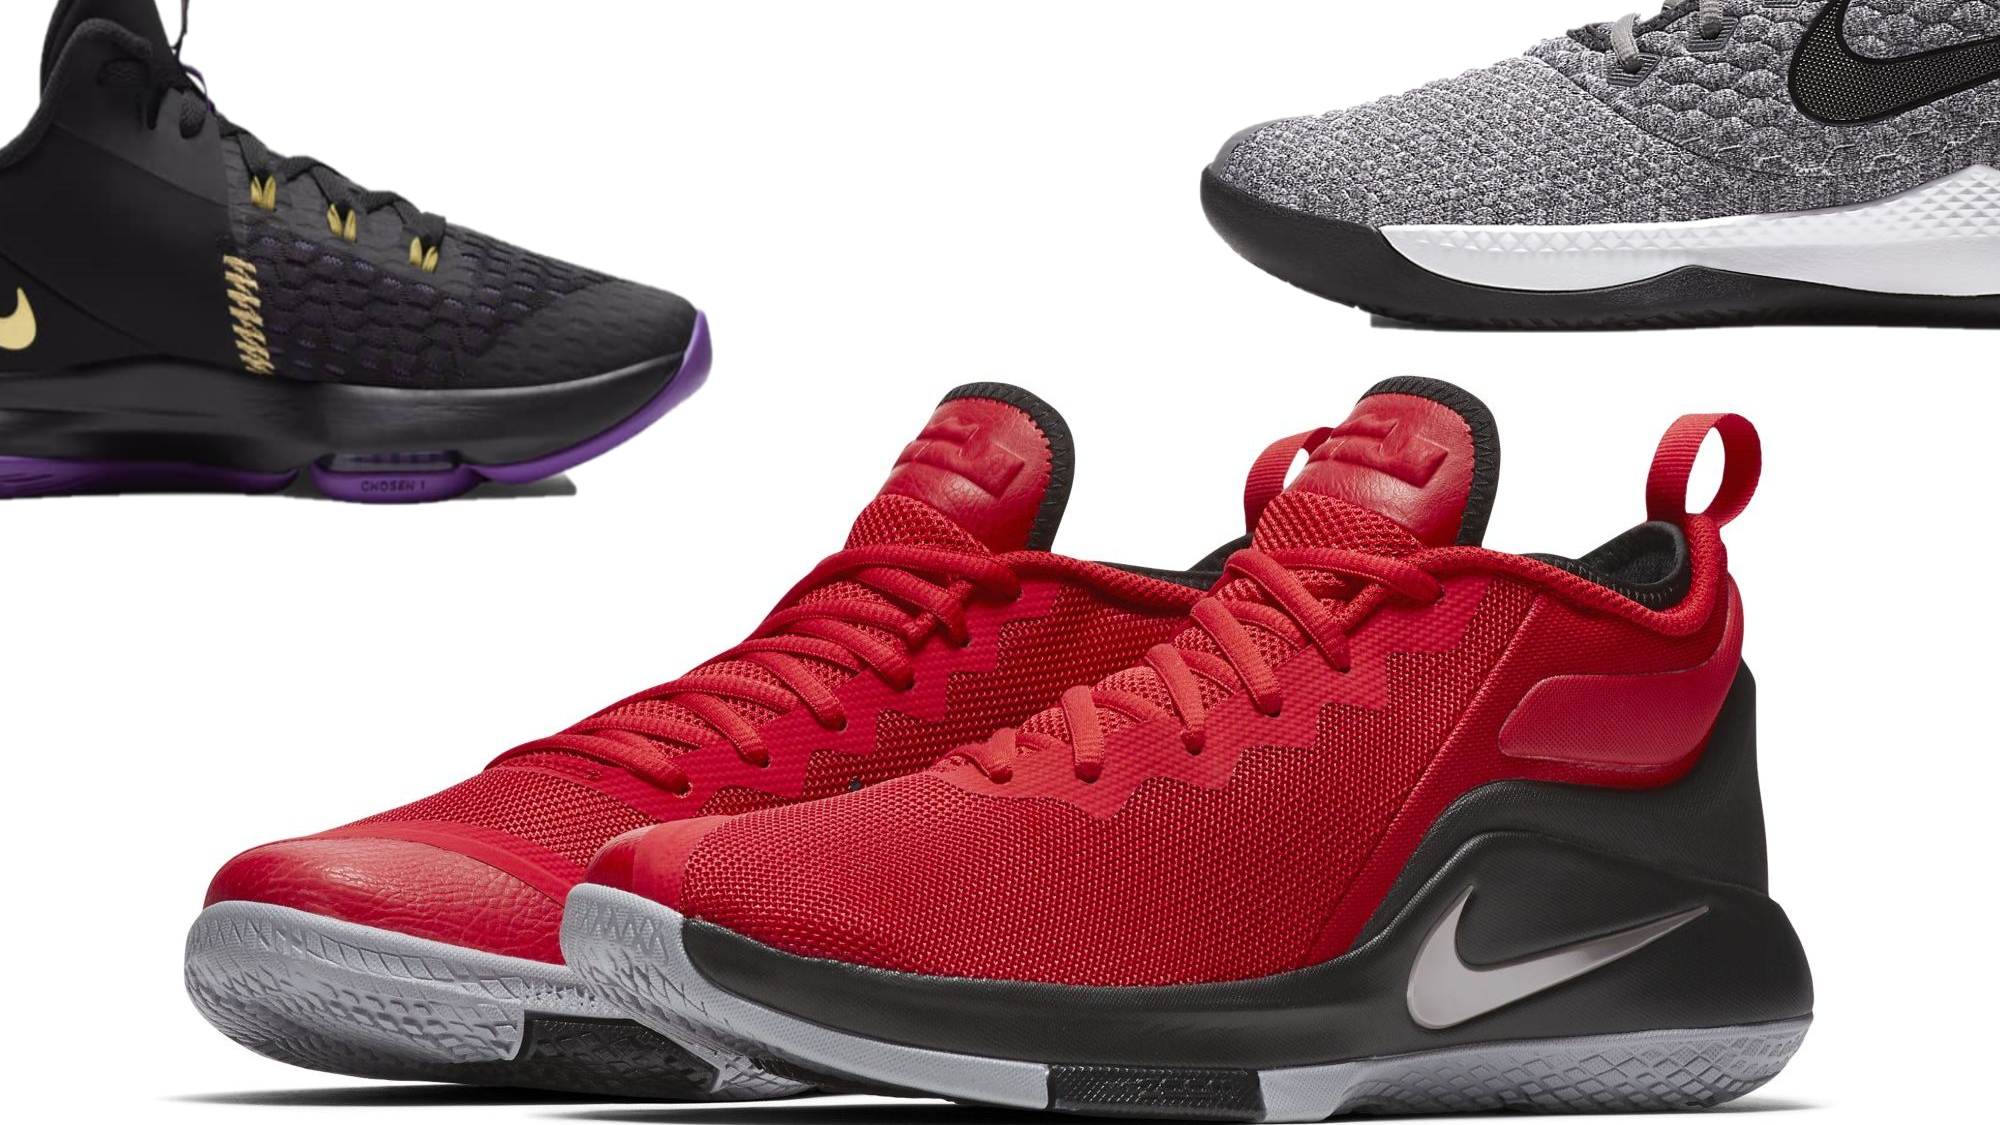 The Best LeBron Shoes: Witness Line